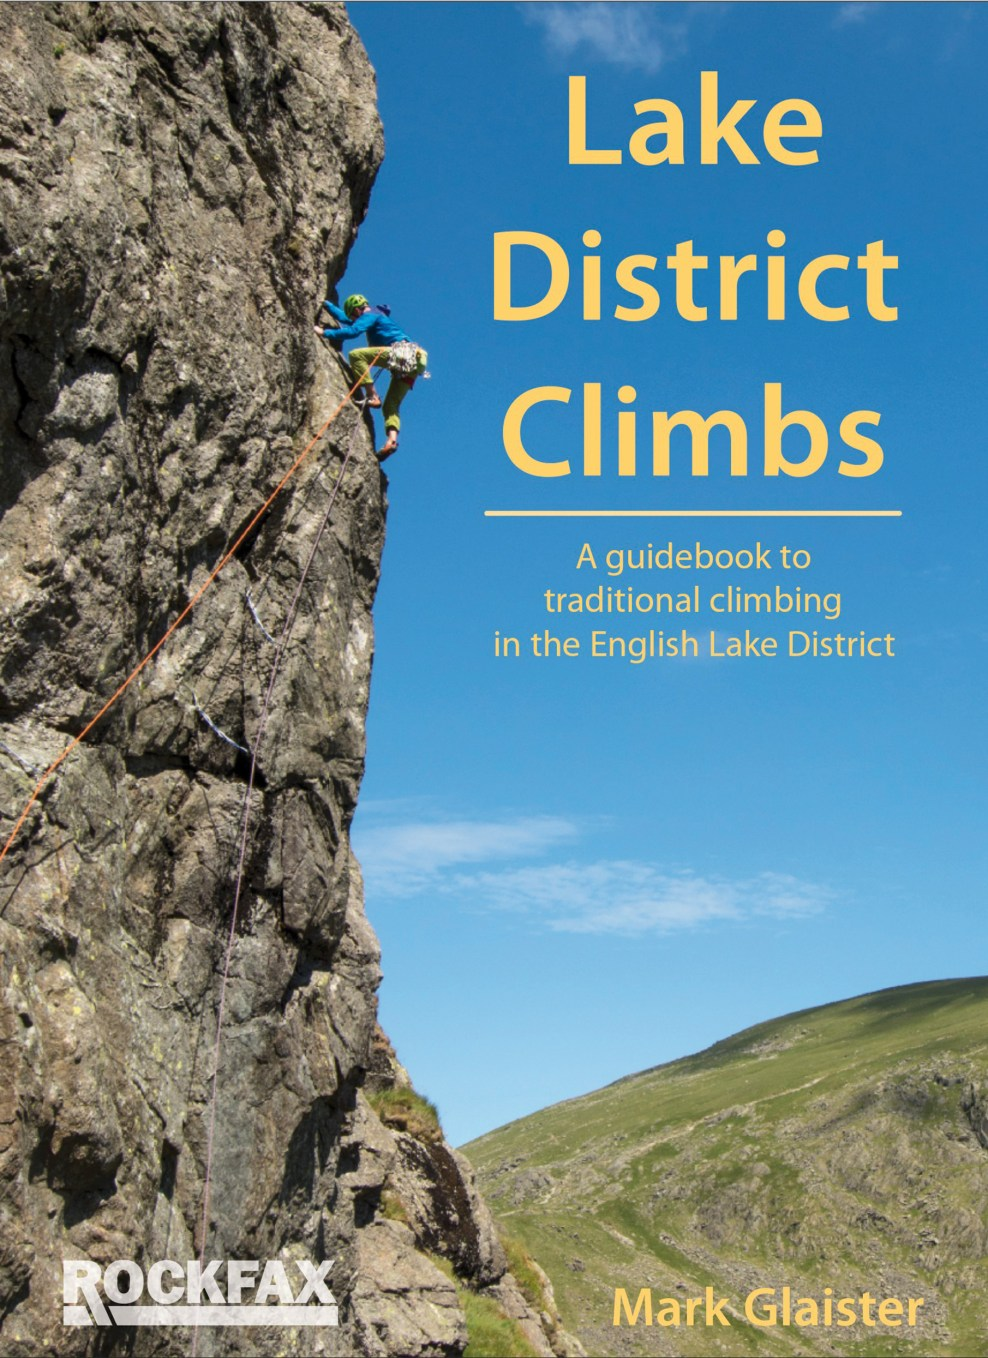 Lake-District-Climbs-2019-1